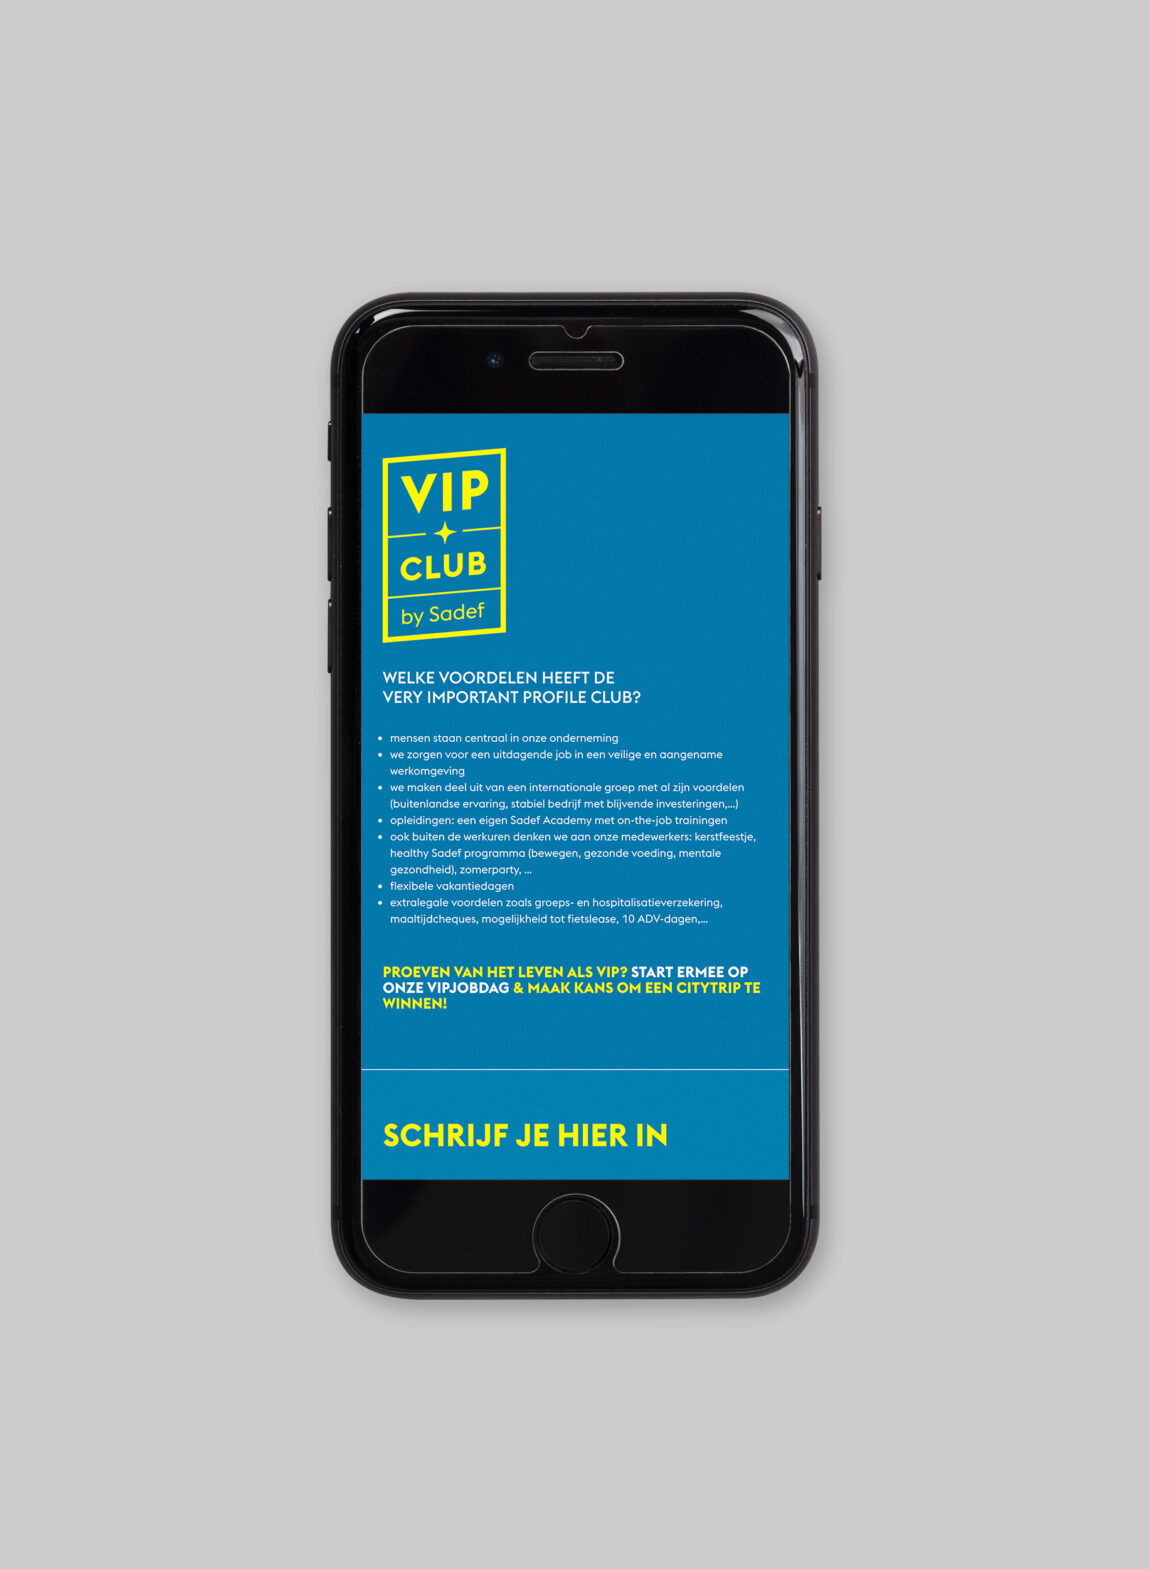 VIP Iphone v1 lores